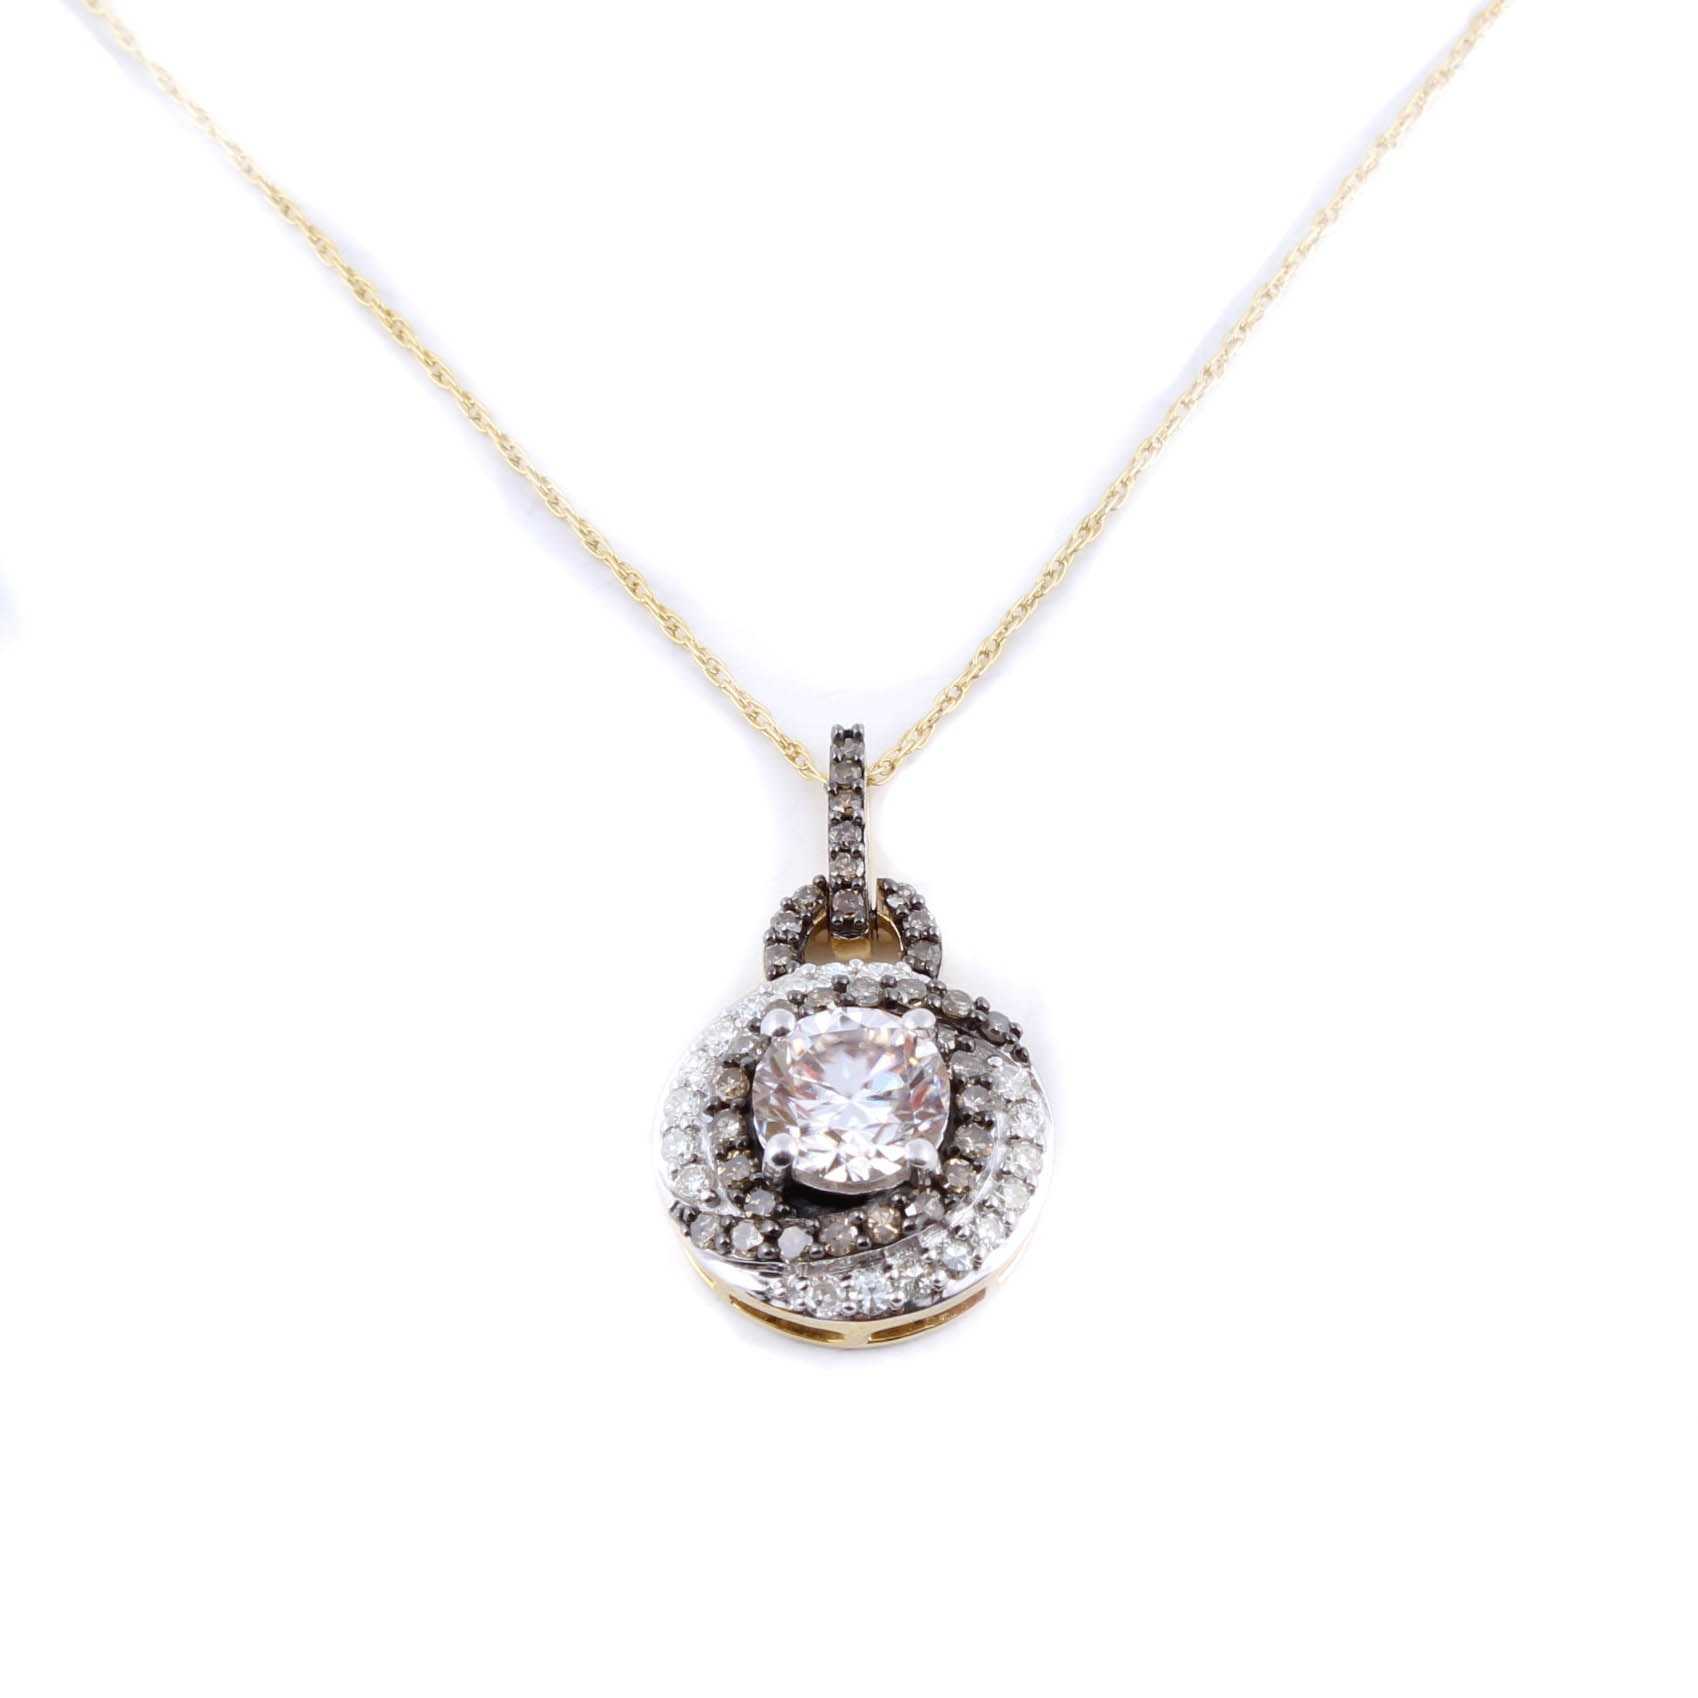 Sterling Silver with Gold Wash Necklace with Moissanite and Diamonds